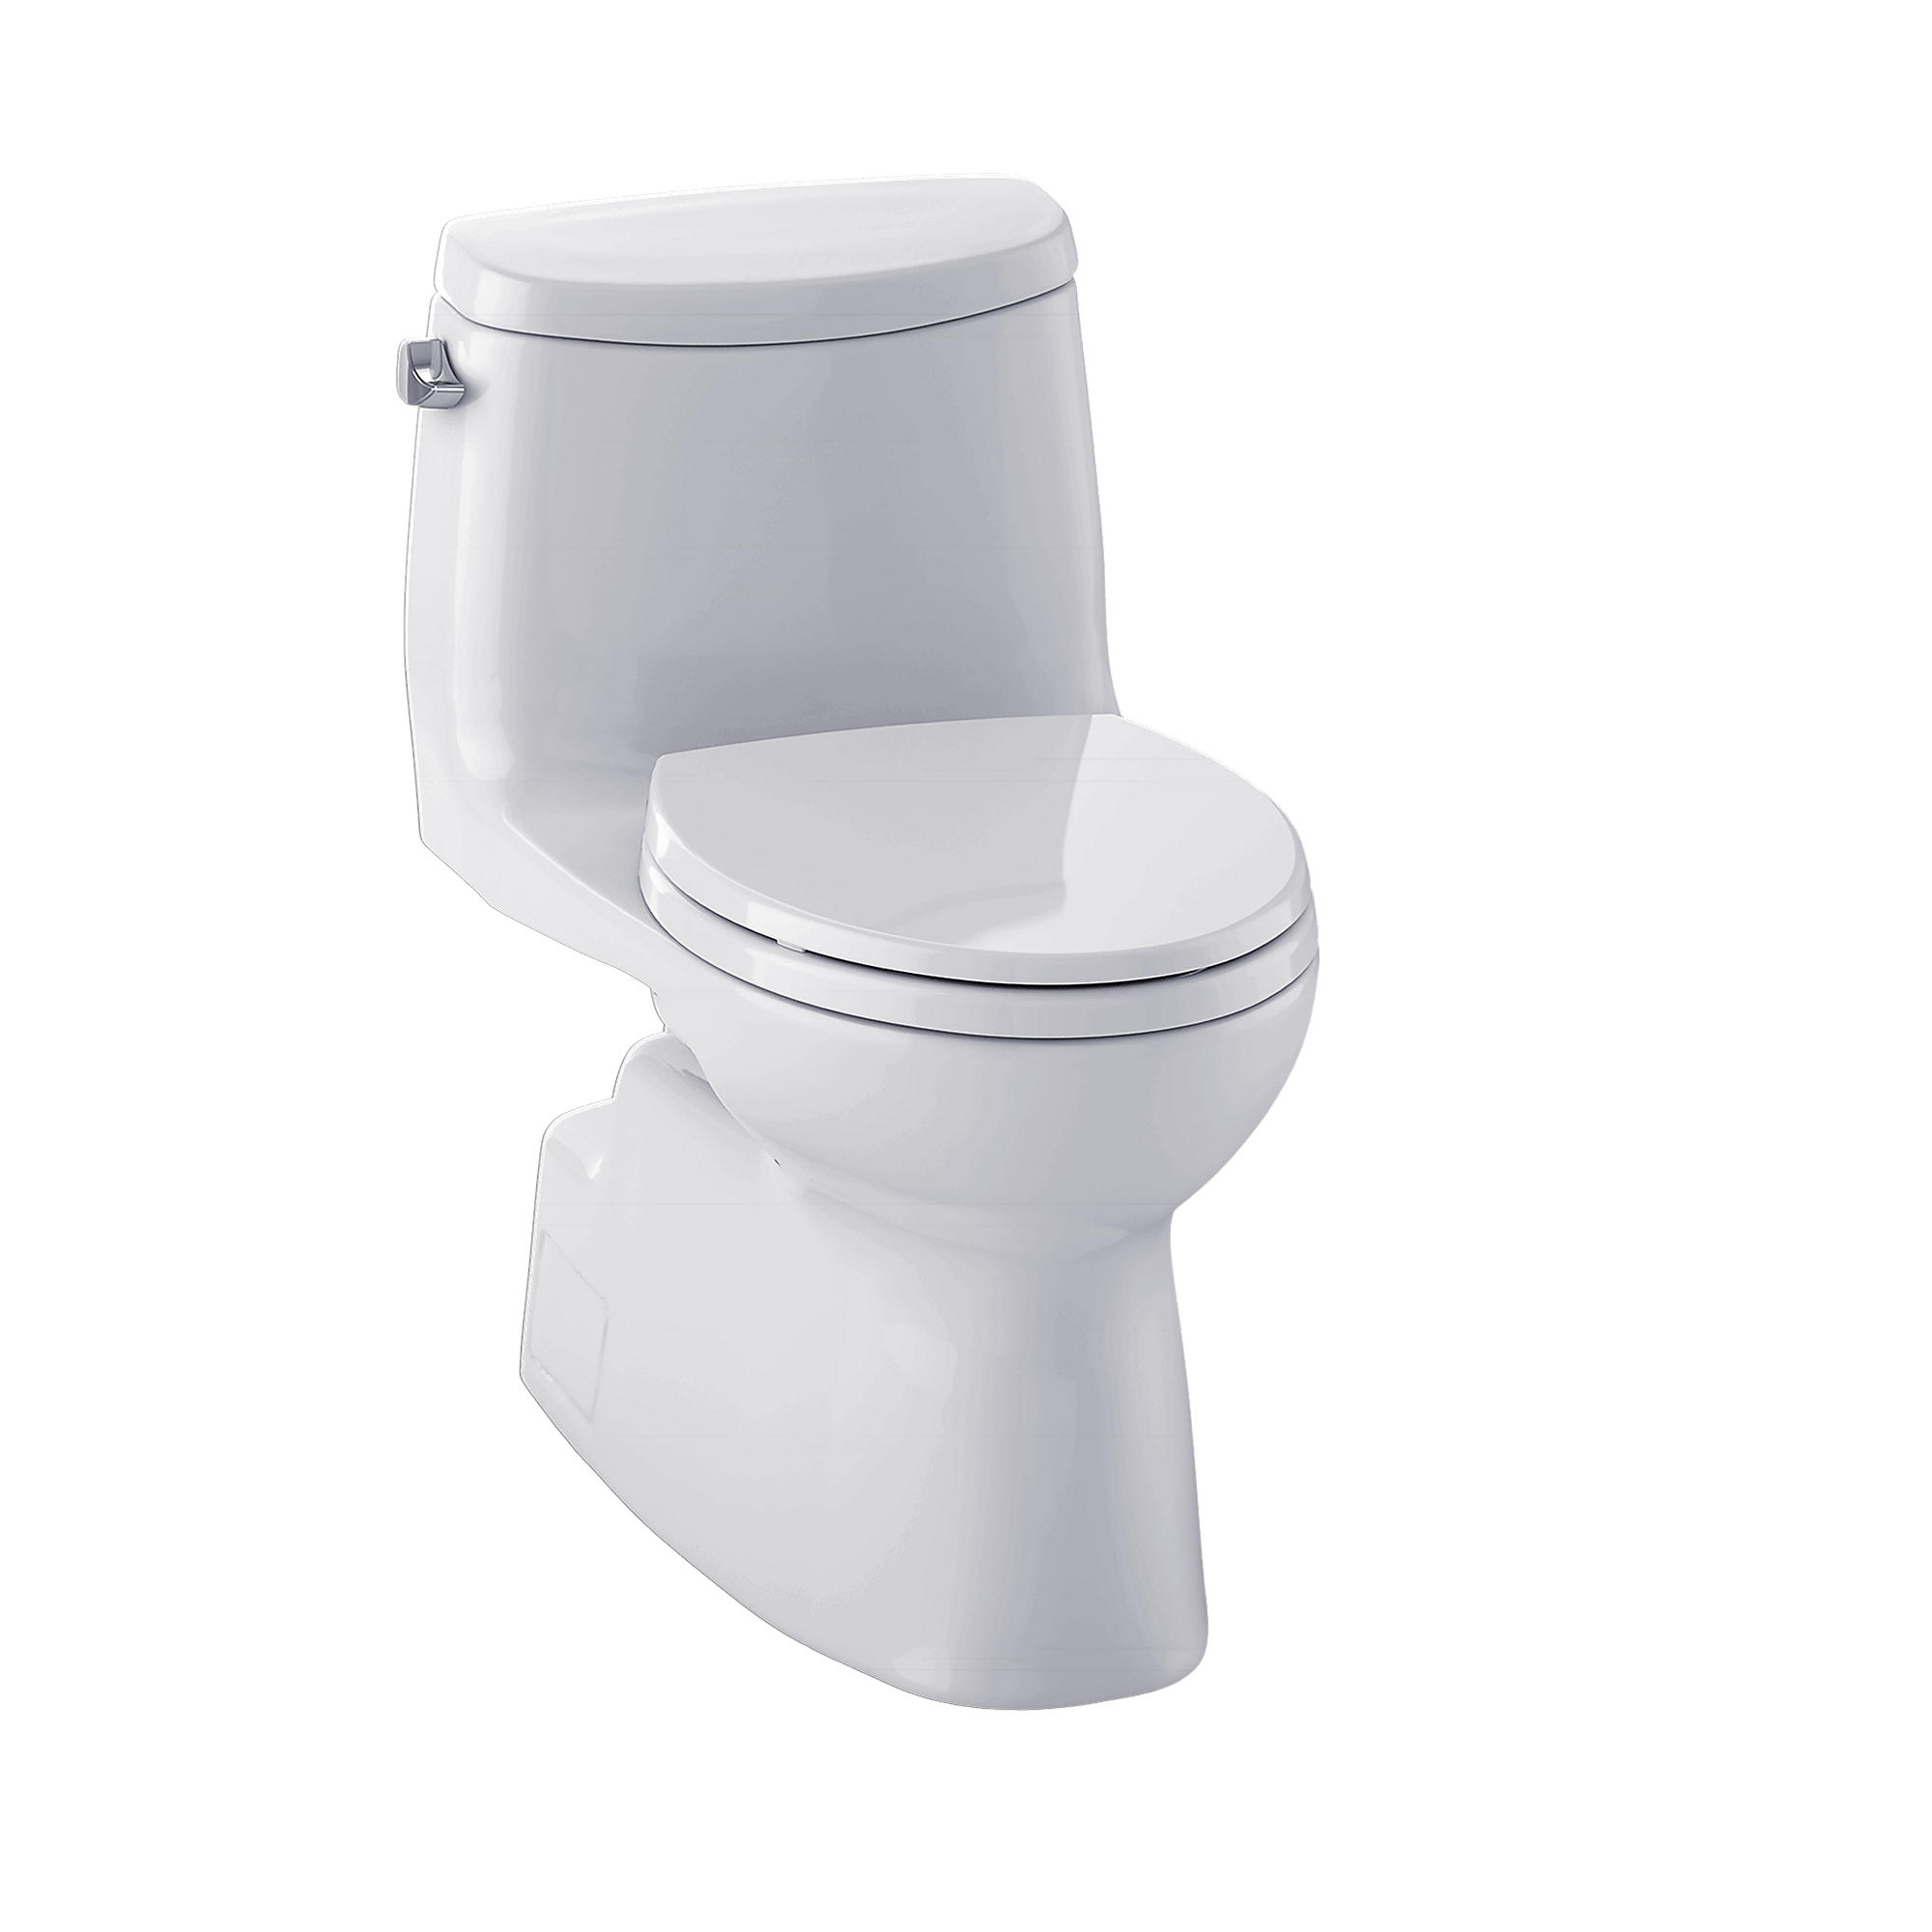 Ms614114cefg 11 carlyle  ii one piece toilet  1 28 gpf  elongated bowl 0